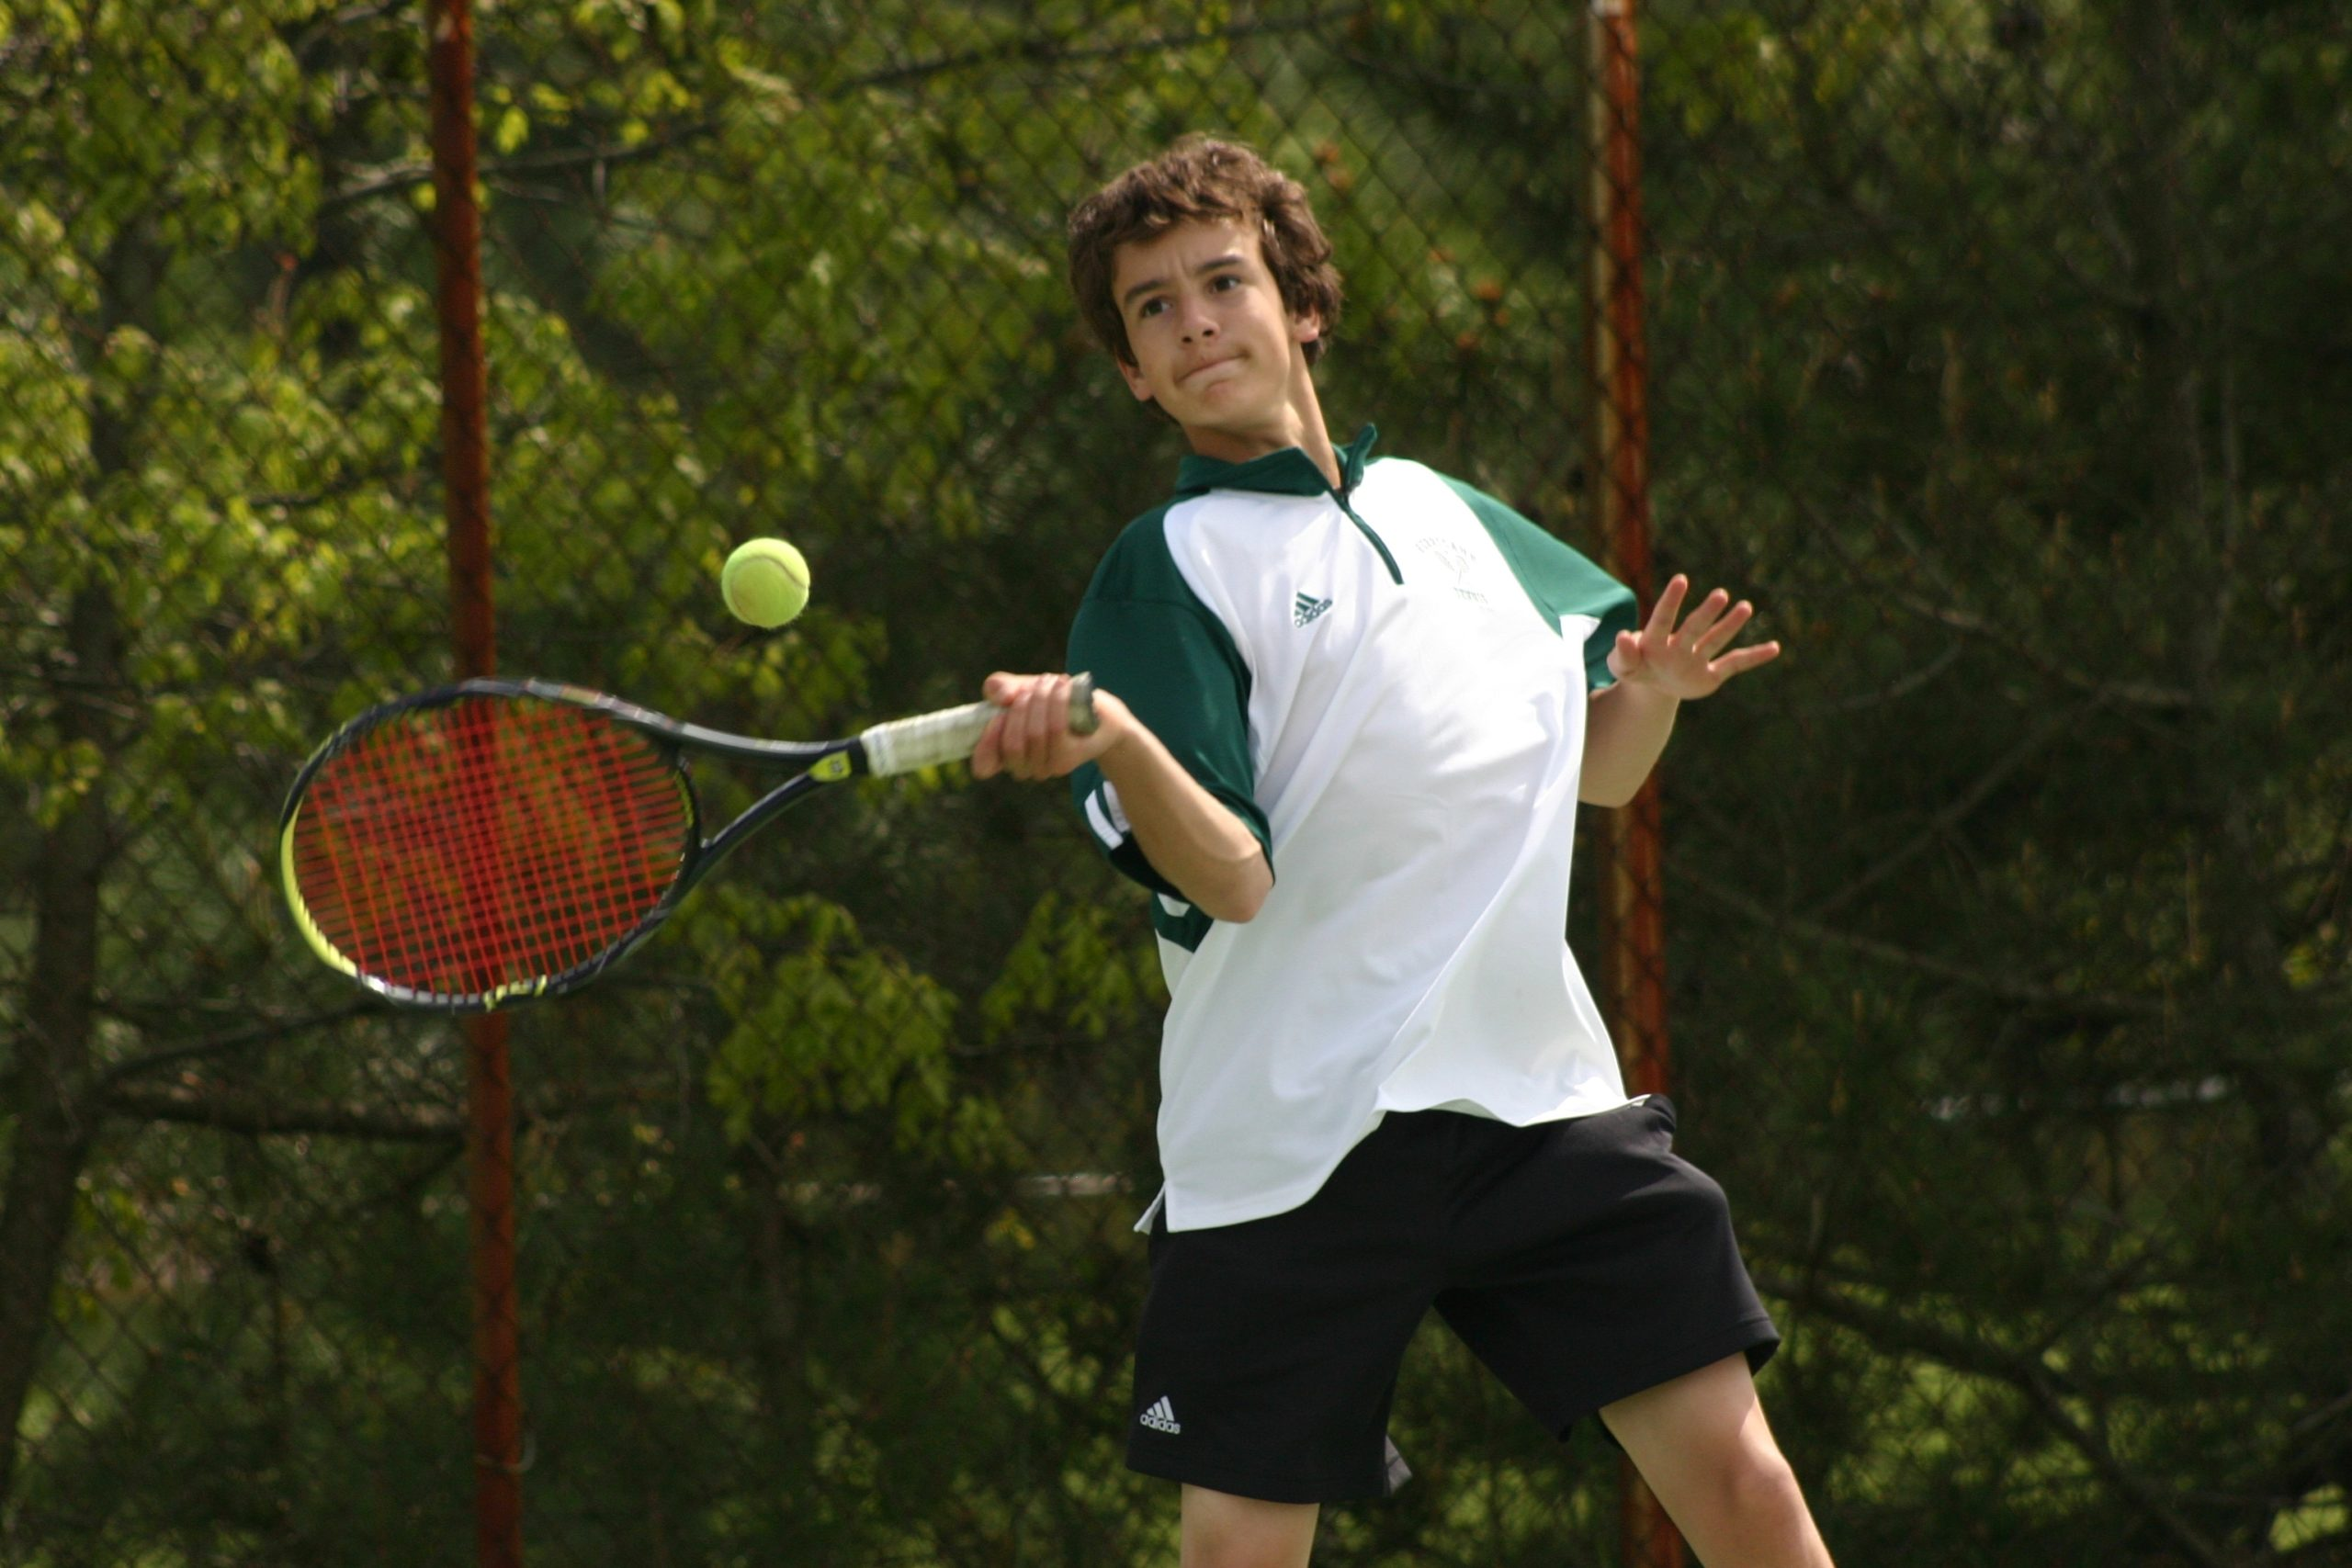 Richard Sipala attended Westhampton Beach his freshman and sophomores years but then transferred to Ross School in East Hampton for his junior and senior years.